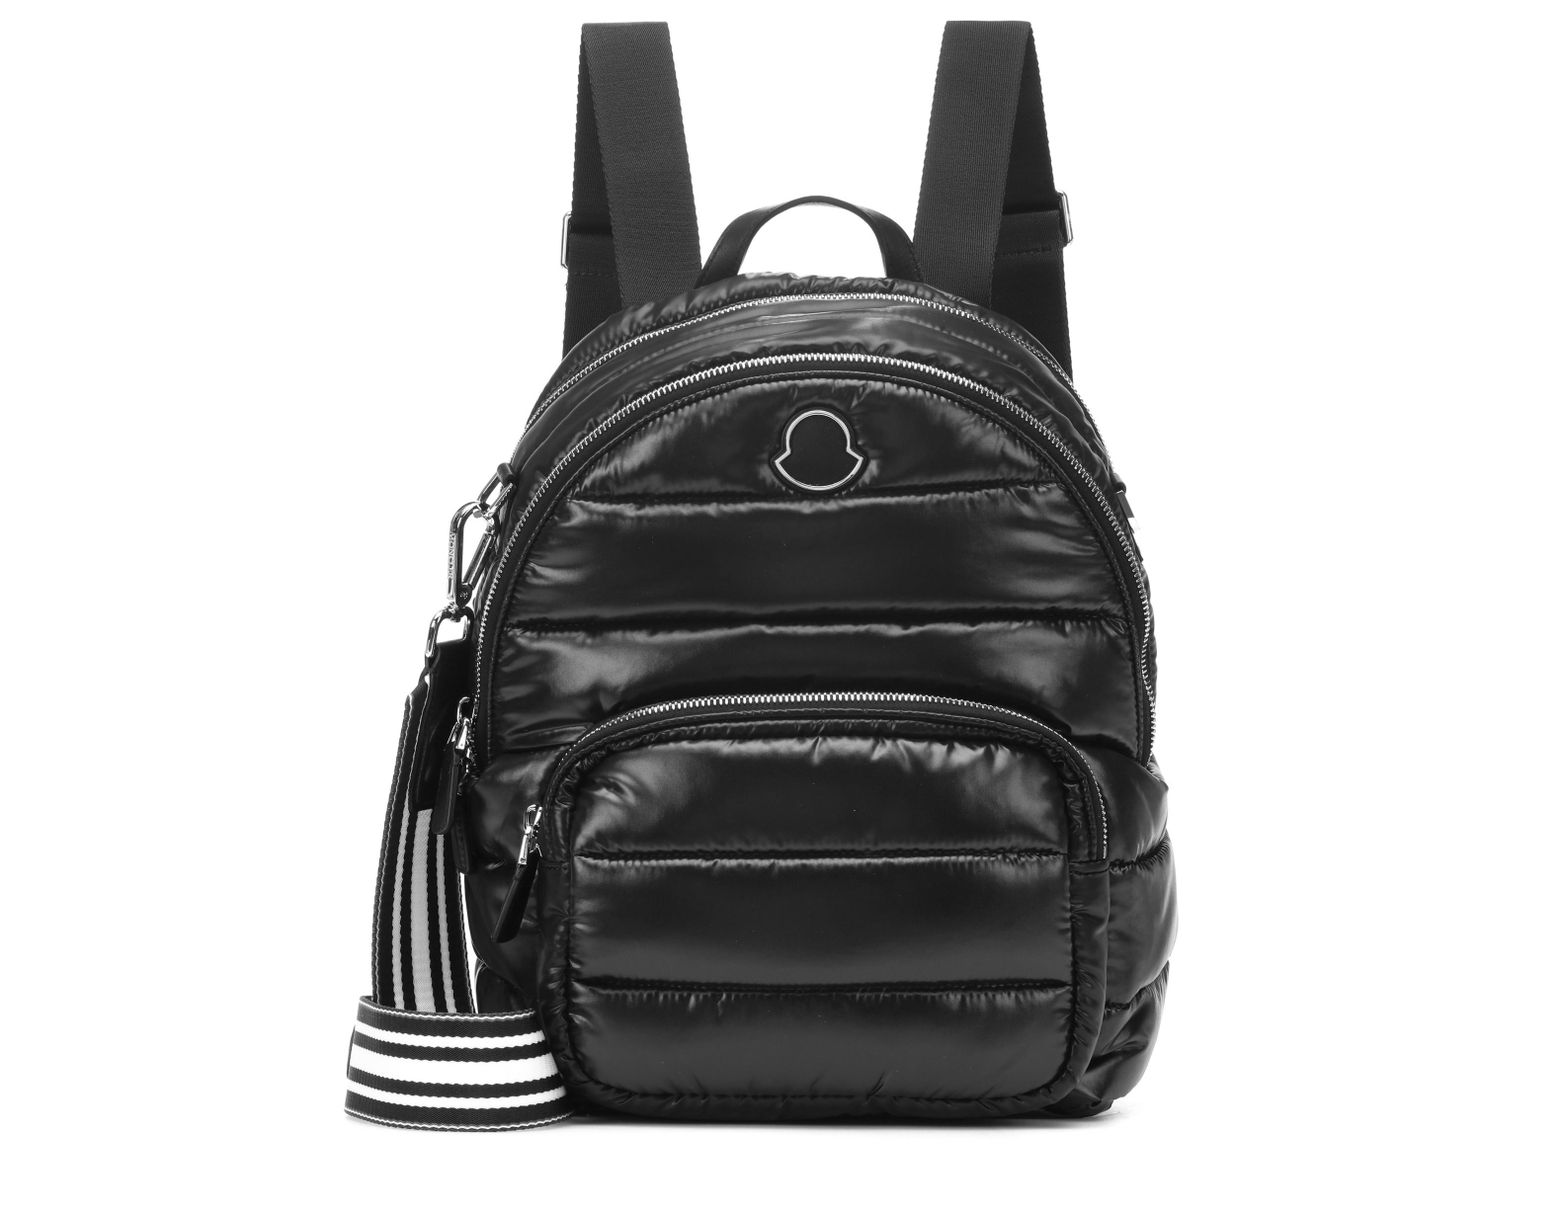 205ad6428 Moncler Kilia Medium Quilted Backpack in Black - Lyst